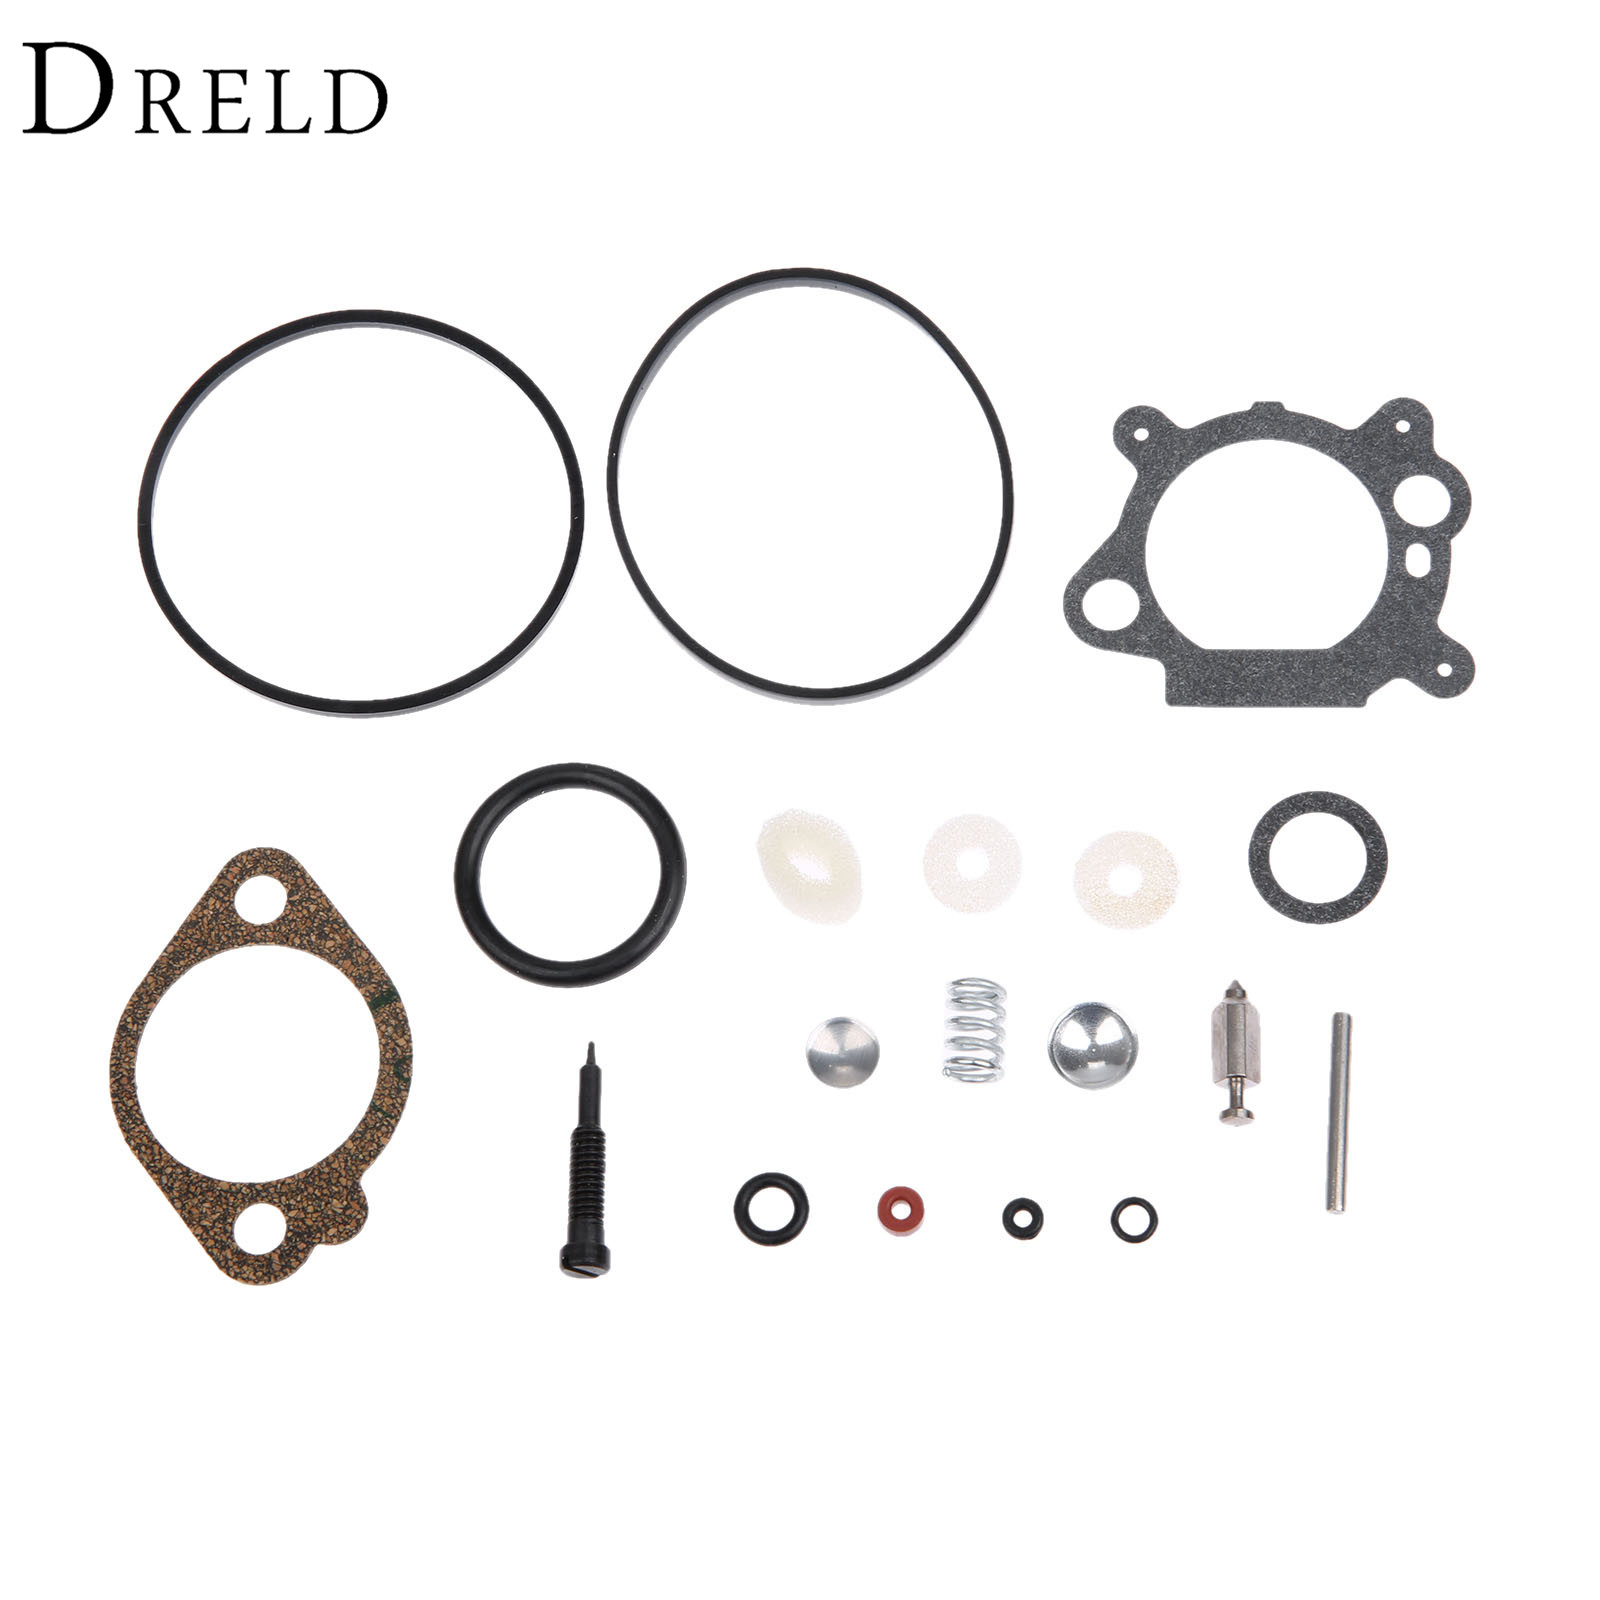 US $2 92 22% OFF|DRELD Carburetor Carb Repair Rebuild Kit for Briggs &  Stratton 498260 493762 492495 for 3 5 and 4 HP Max Series Lawn Mower  Parts-in